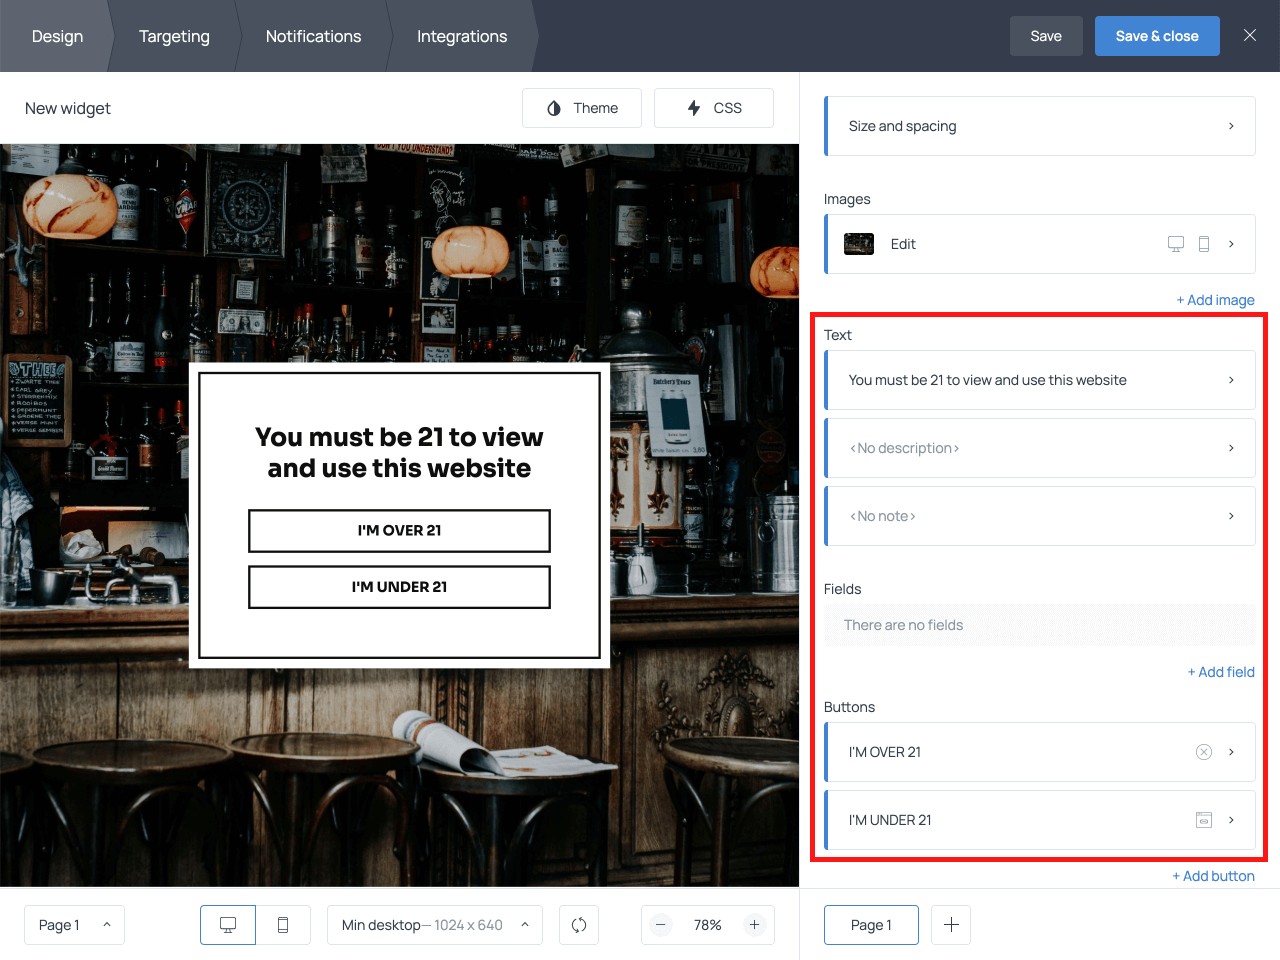 How to edit the copy on the age verification popup